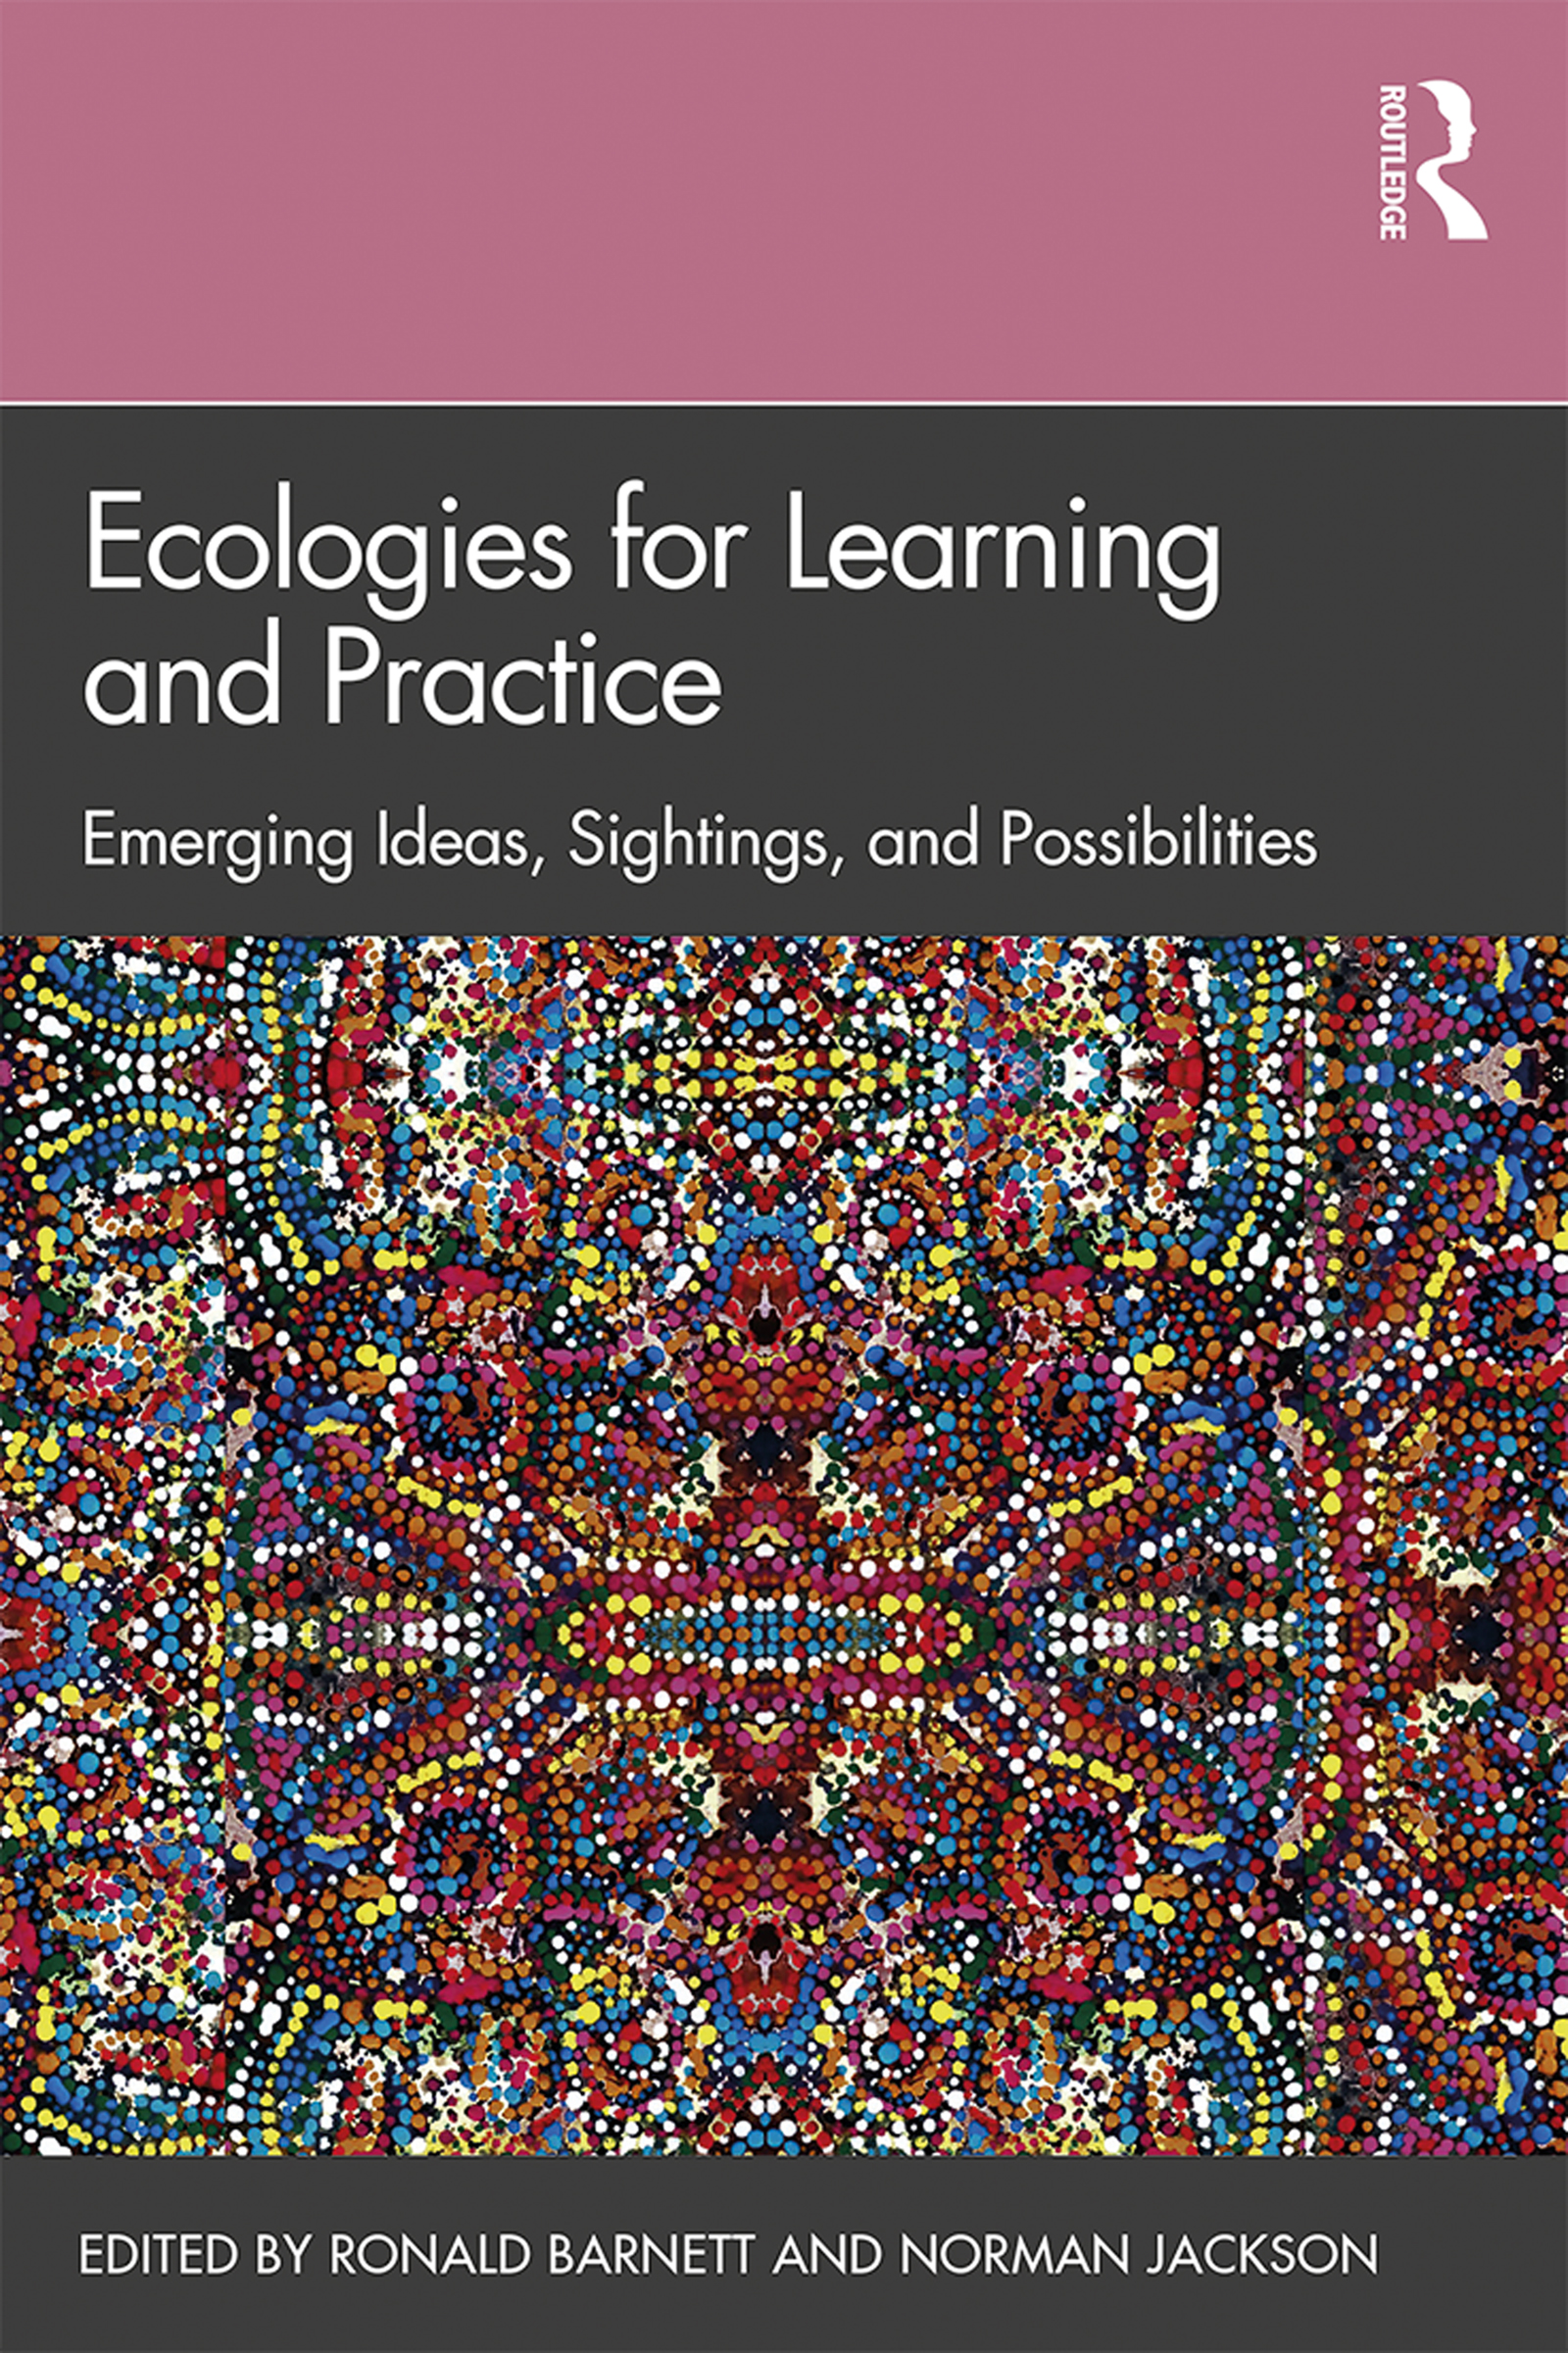 Ecologies for Learning and Practice